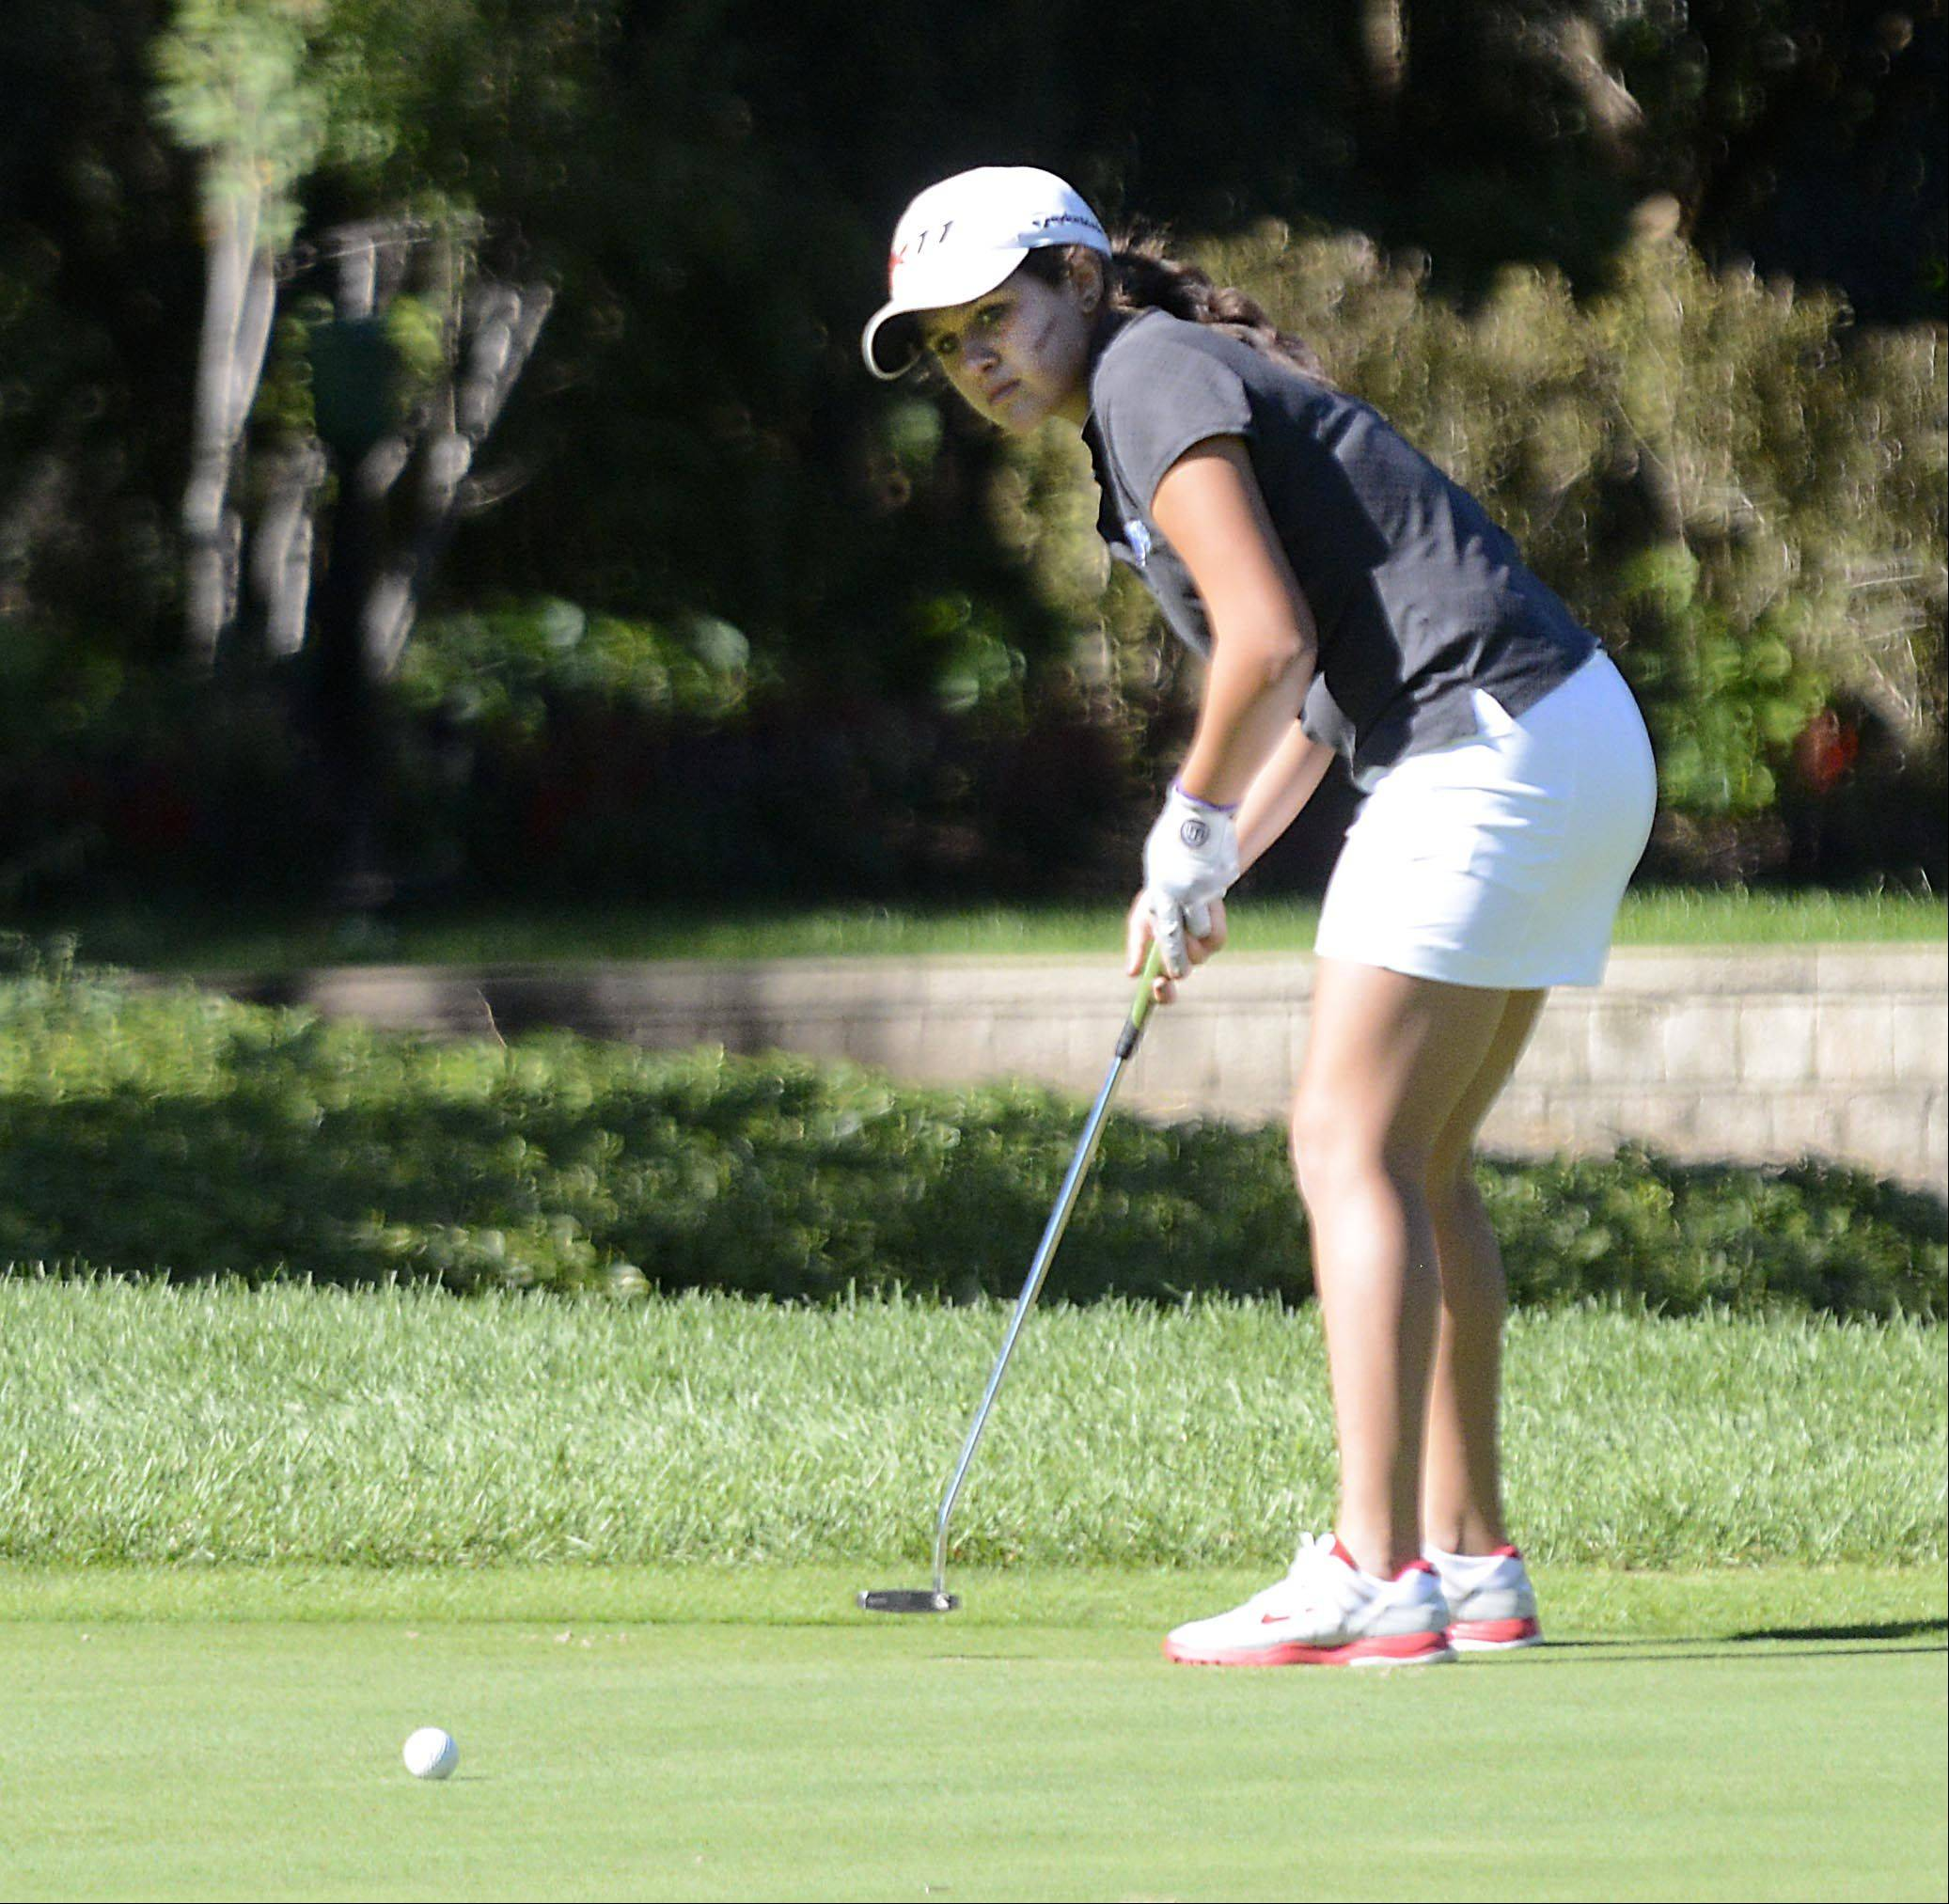 St. Charles North�s Gianna Furrie watches her long putt on No. 8 Monday at the Elgin Country Club girls golf invitational. Furrie won the individual title with a 3-over par 38.